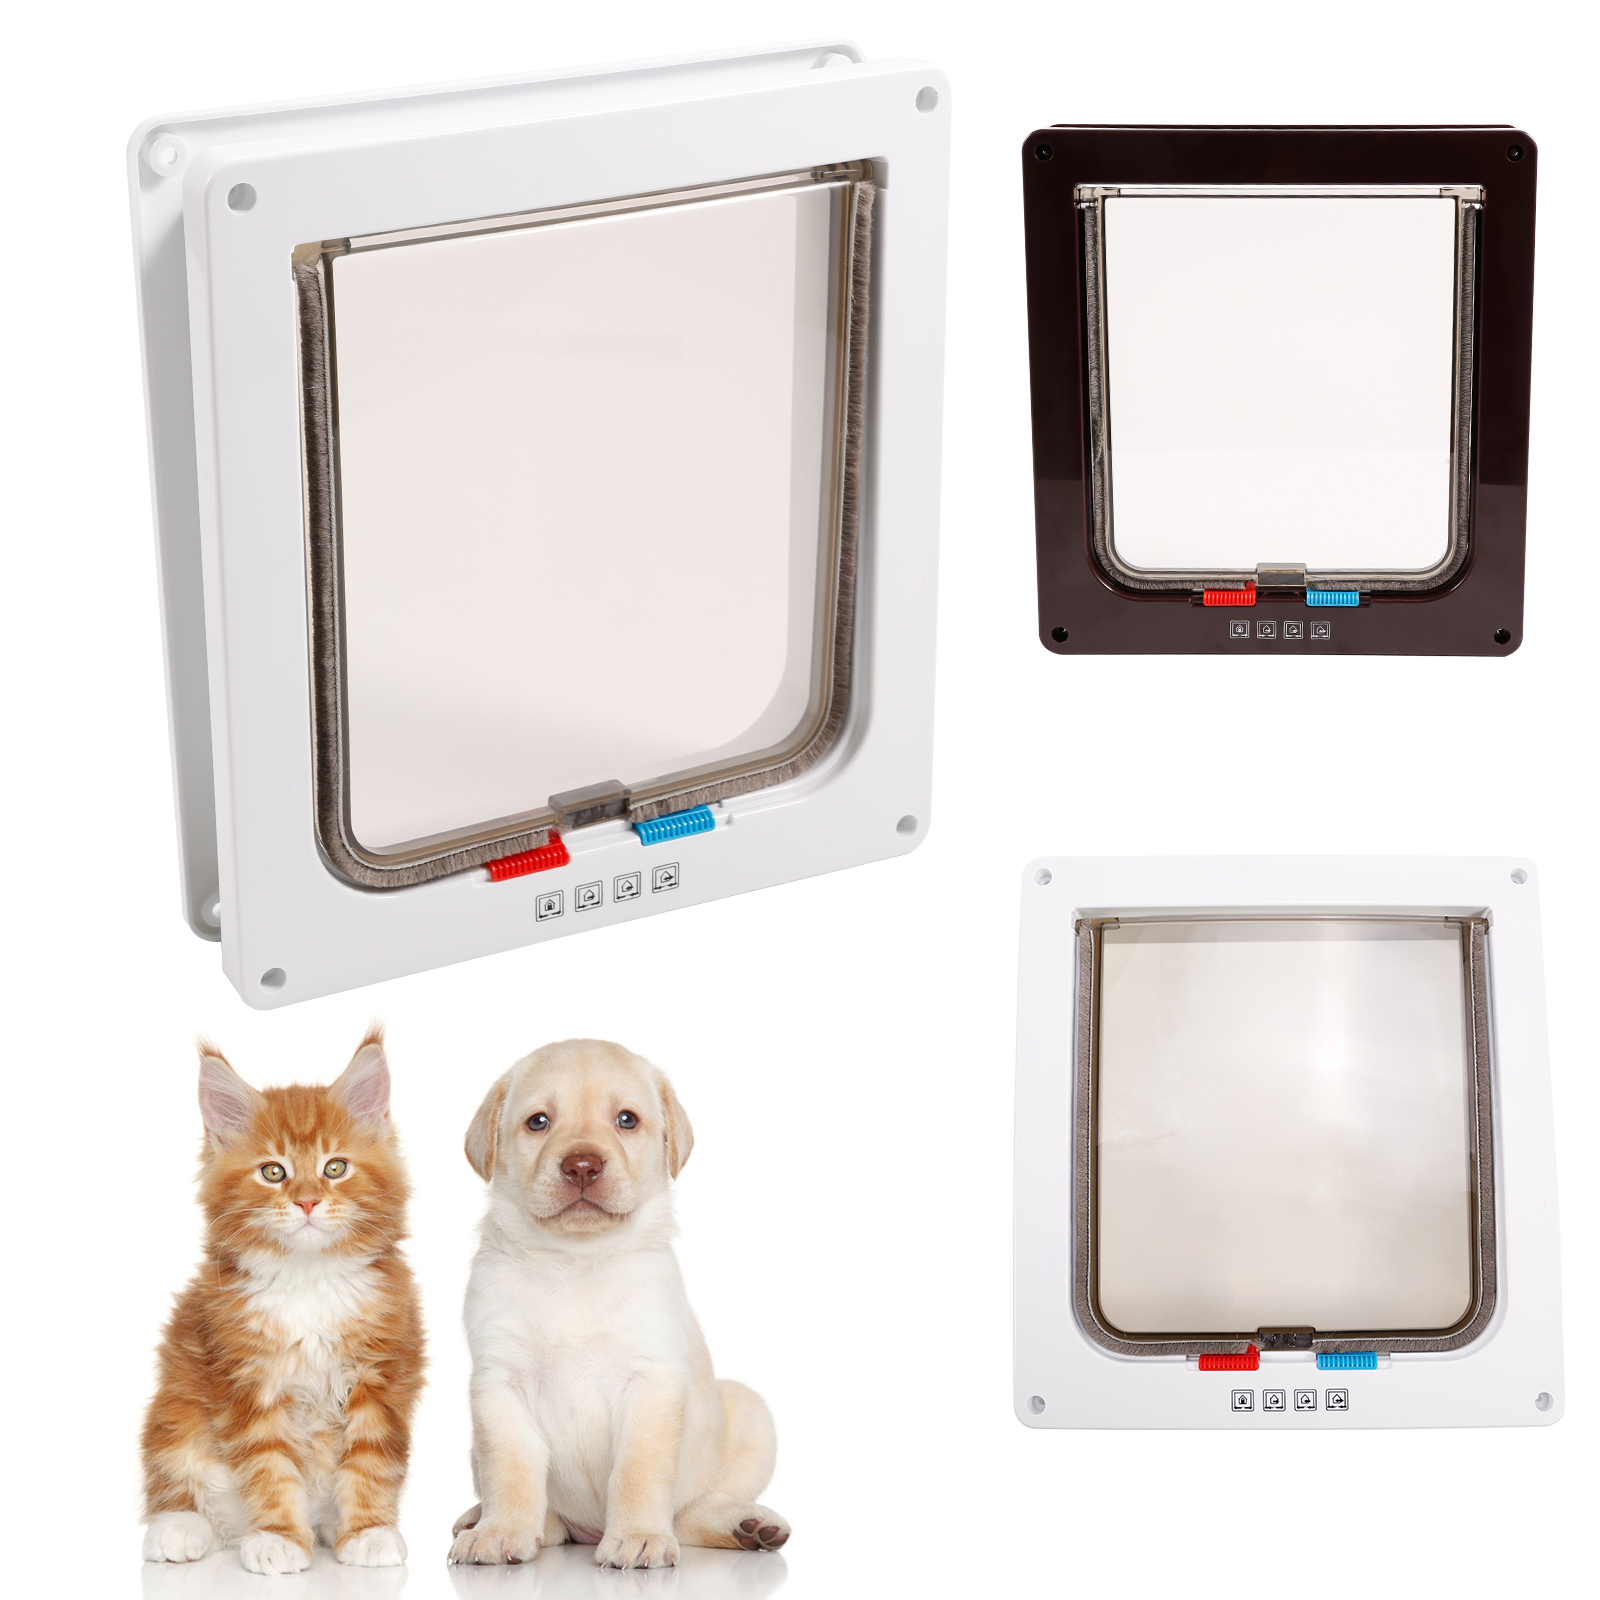 Test pets mate dog door cat flap puppy small pets 4 way for Dog door flap material